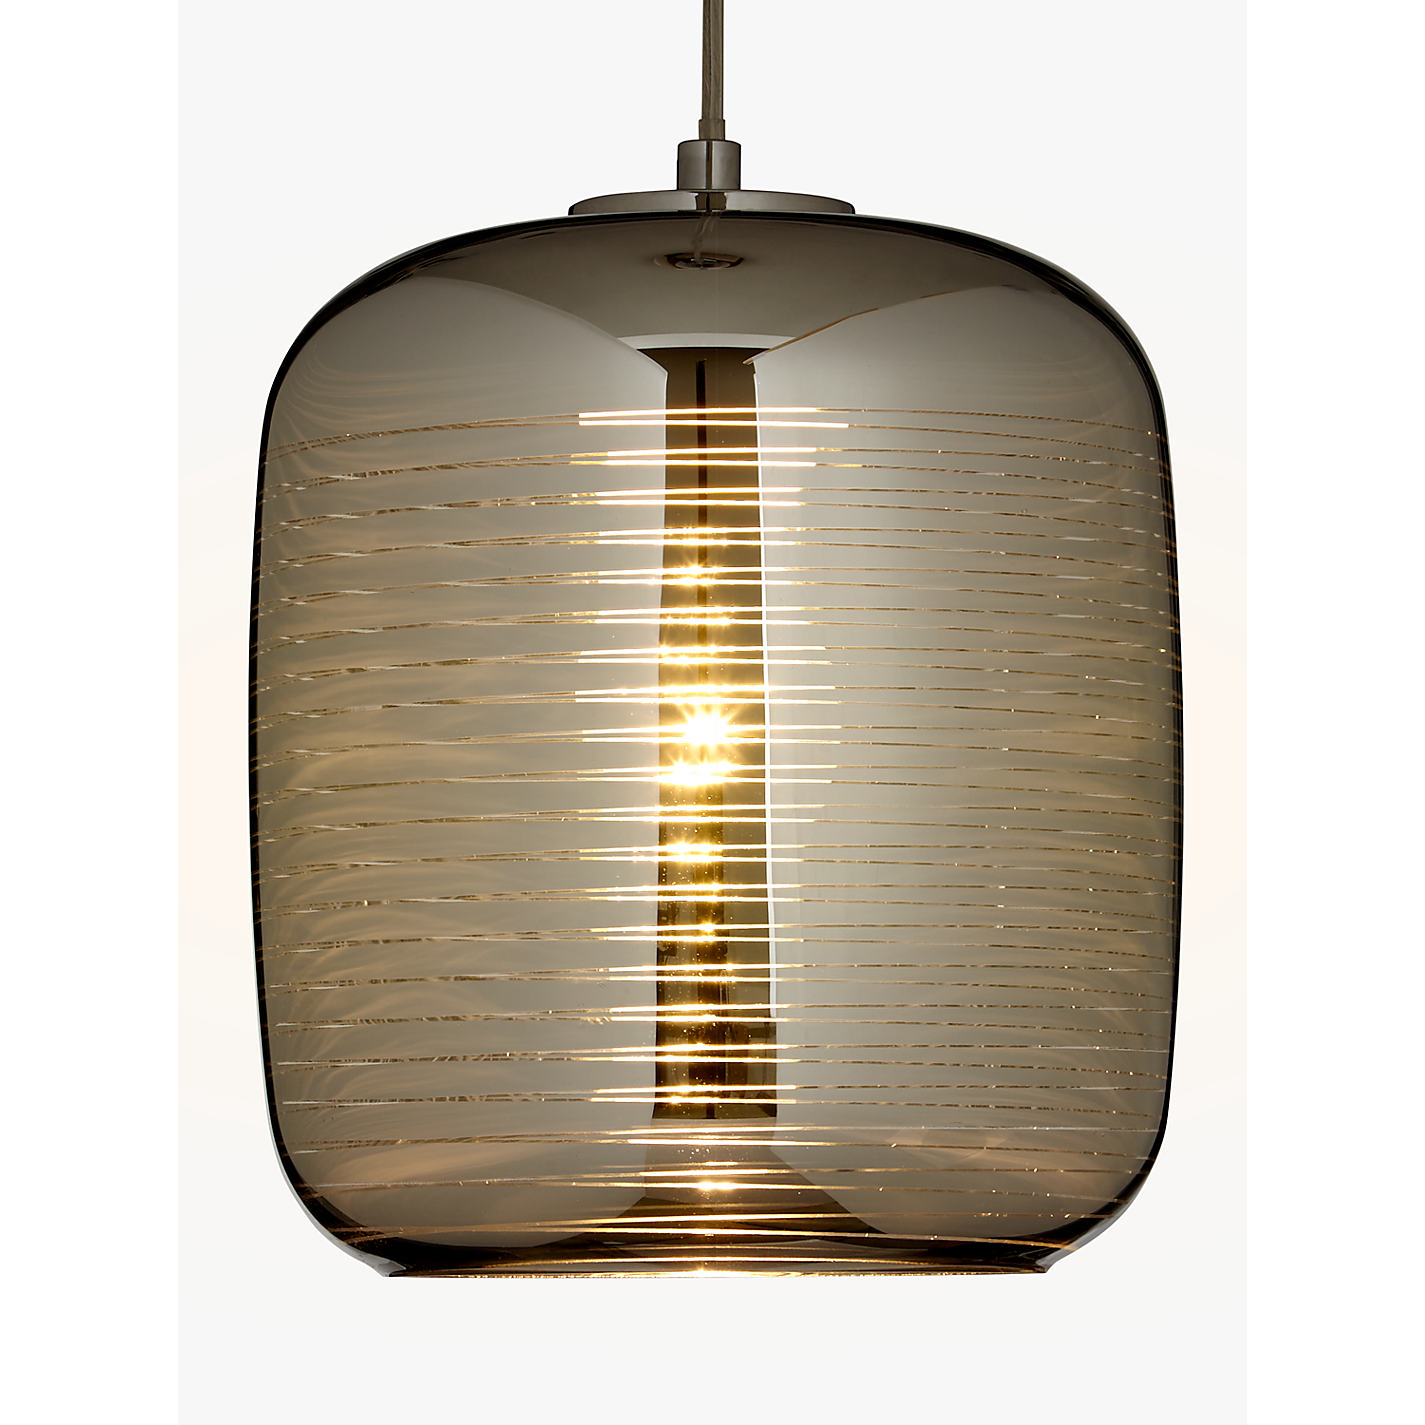 Buy john lewis pluto horizon stripe pendant ceiling light john lewis buy john lewis pluto horizon stripe pendant ceiling light online at johnlewis aloadofball Gallery